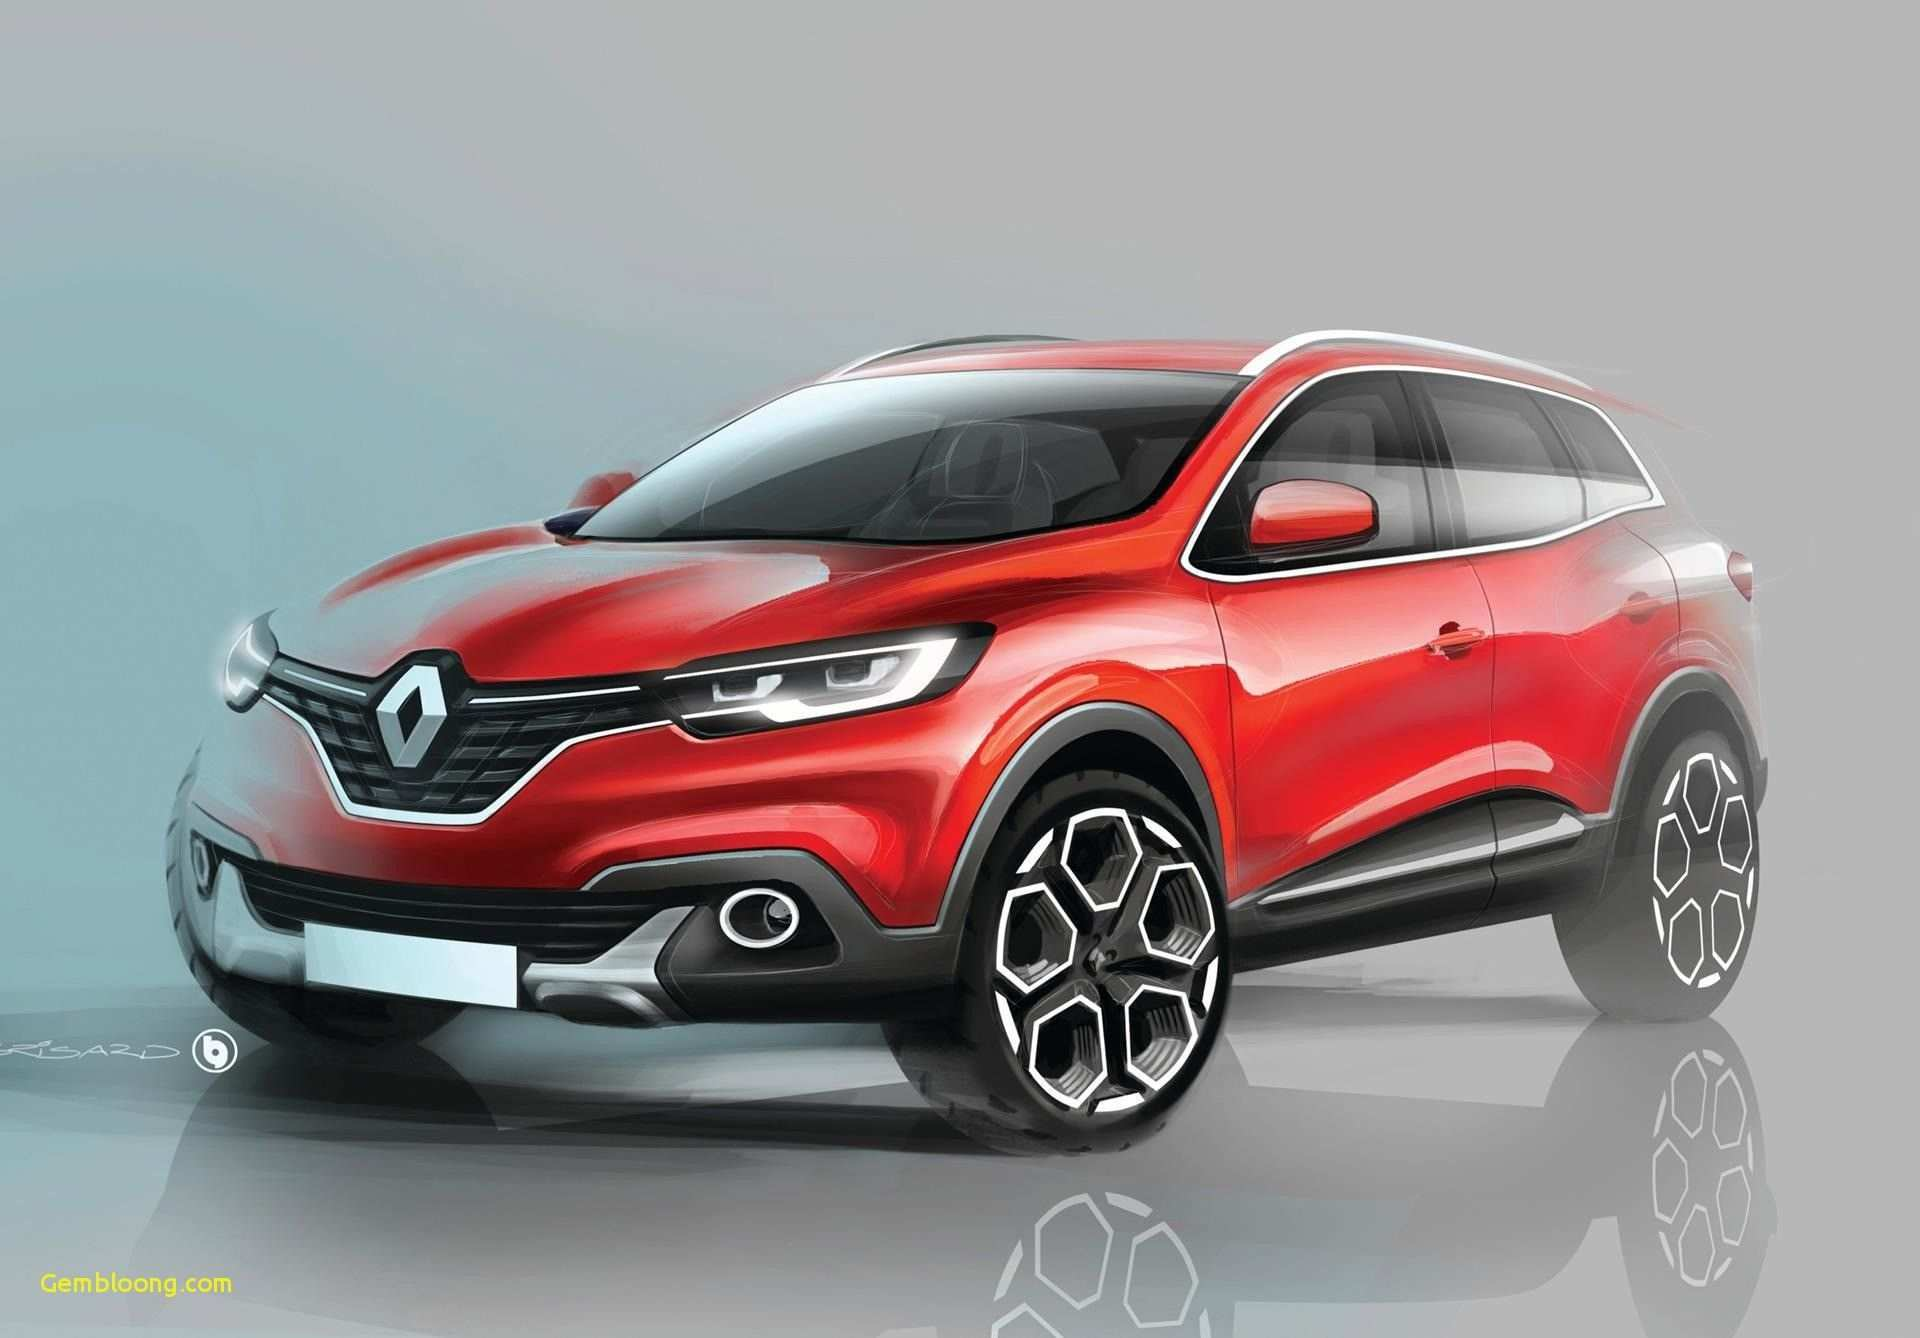 31 New Renault Concept 2020 Images with Renault Concept 2020